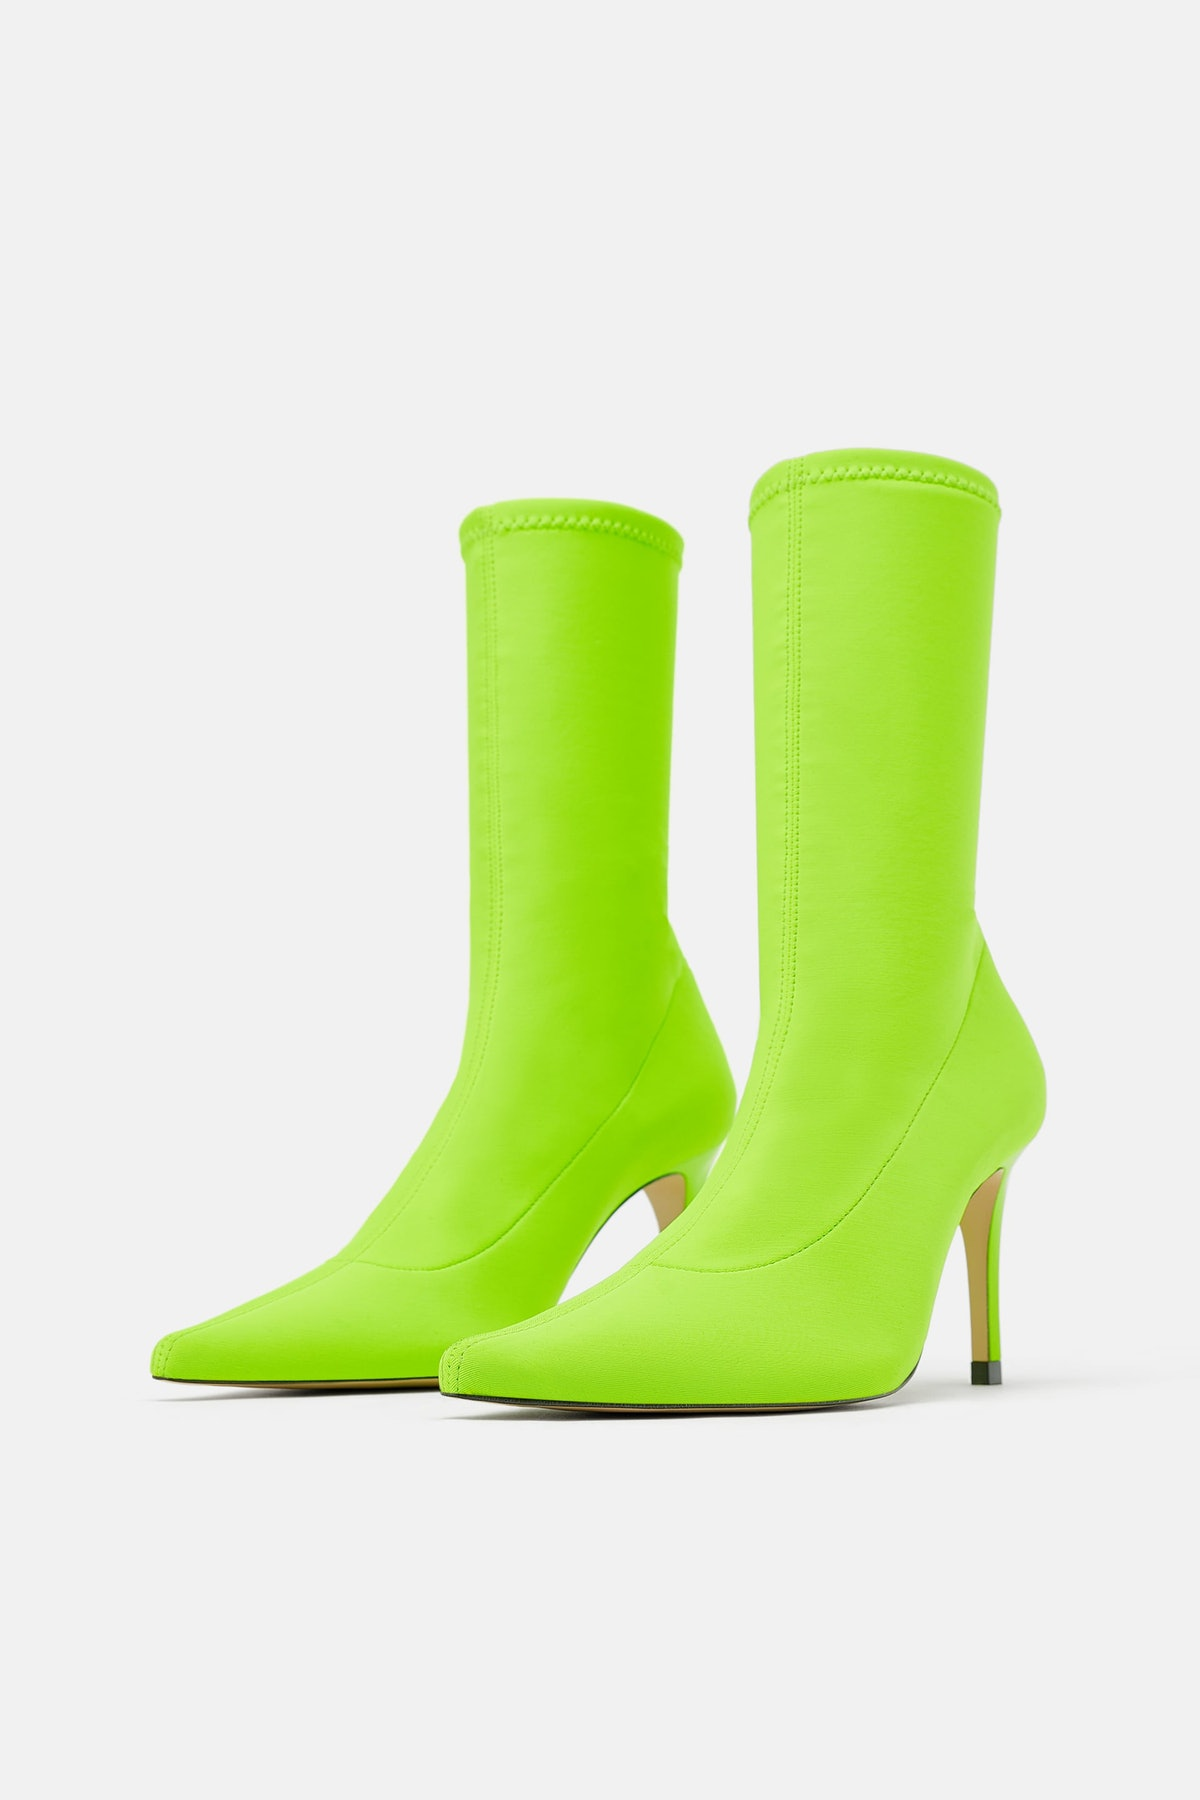 FLUORESCENT SOCK STYLE HEELED ANKLE BOOTS